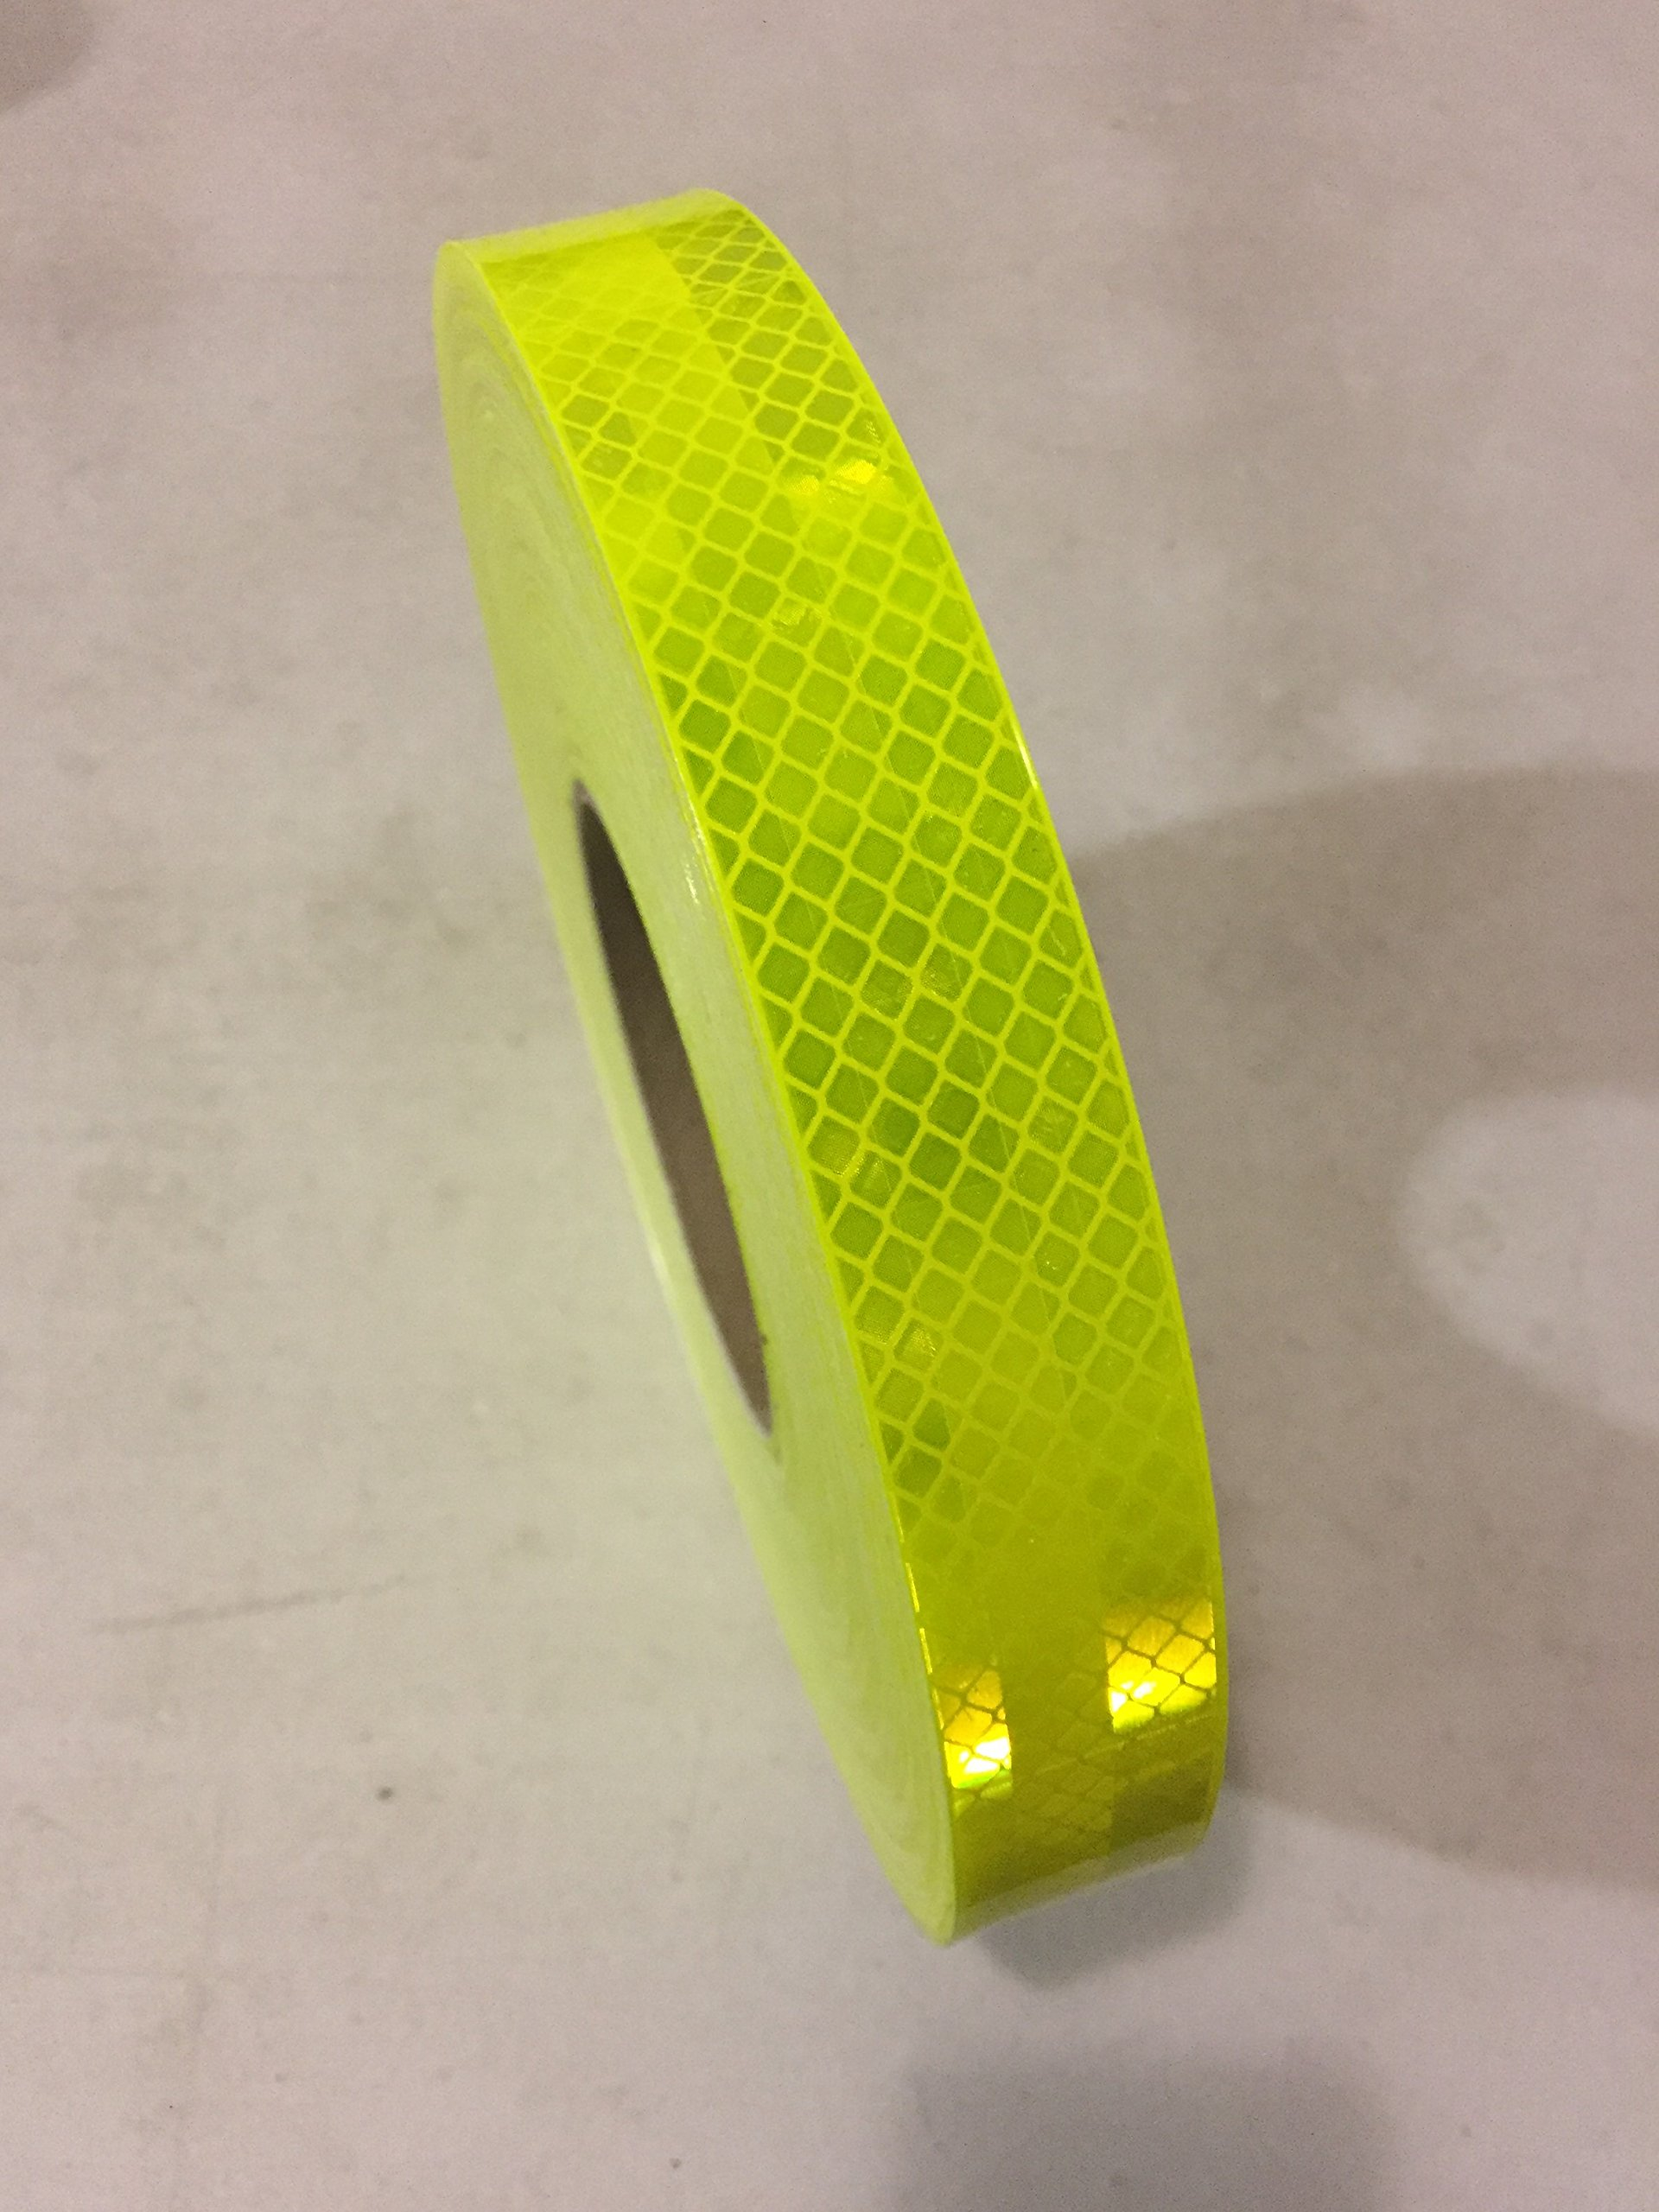 1'' x 150' Roll of 3M 983-23 Series Reflective Marking Warning Safety Conspicuity Tape Fluorescent Yellow Green